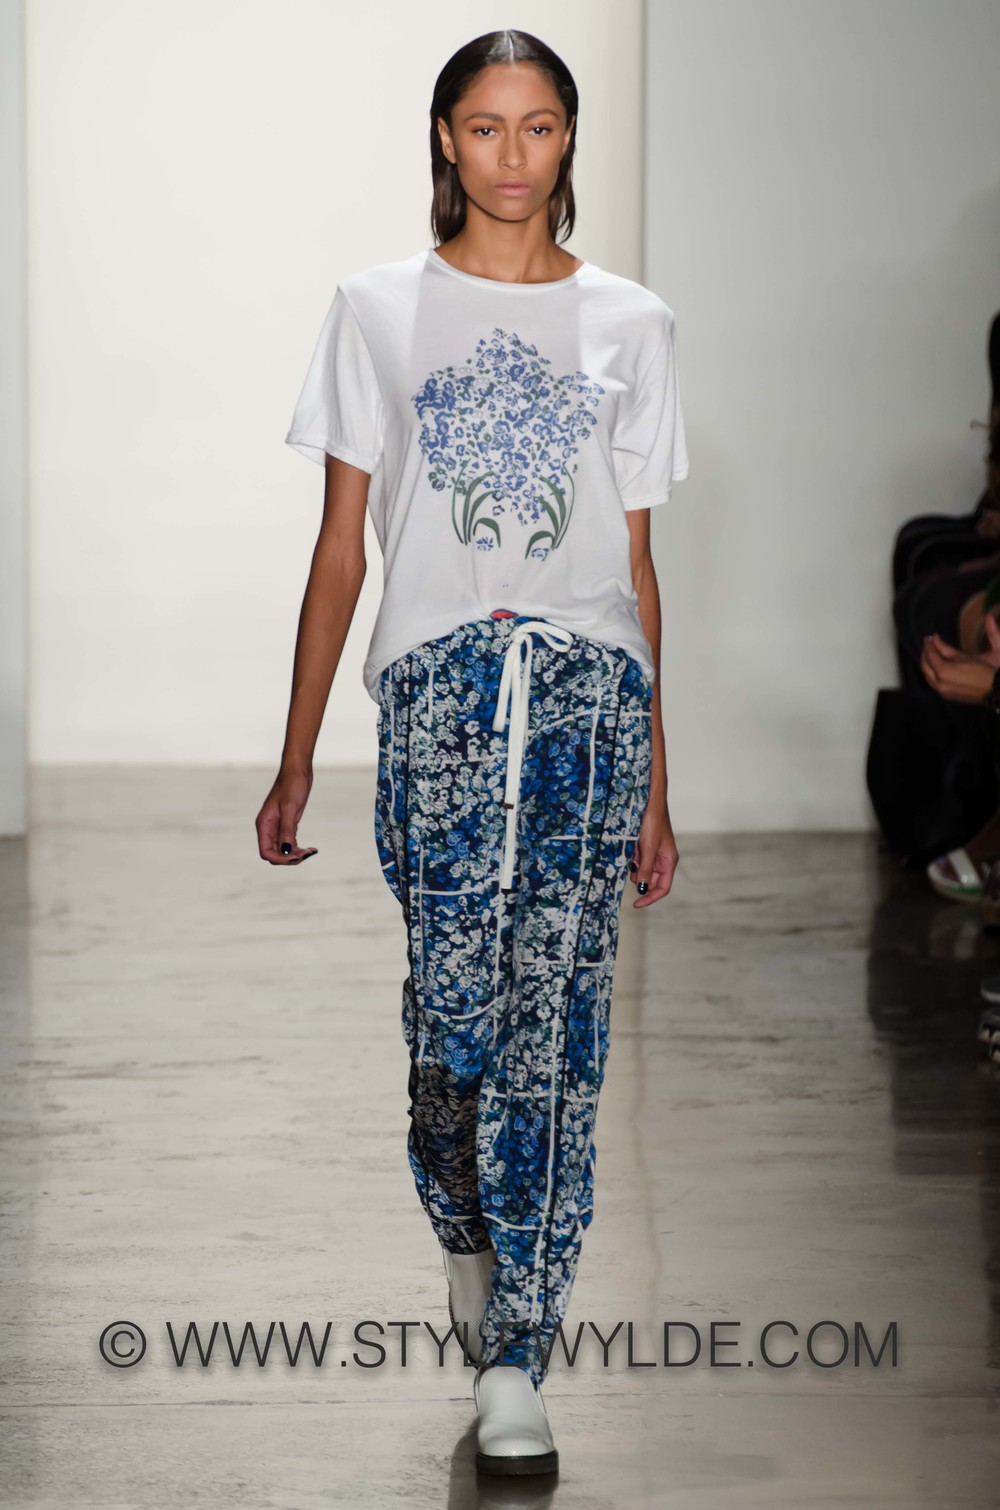 stylewylde_timo_weiland_gallery_ss2014-31.jpg